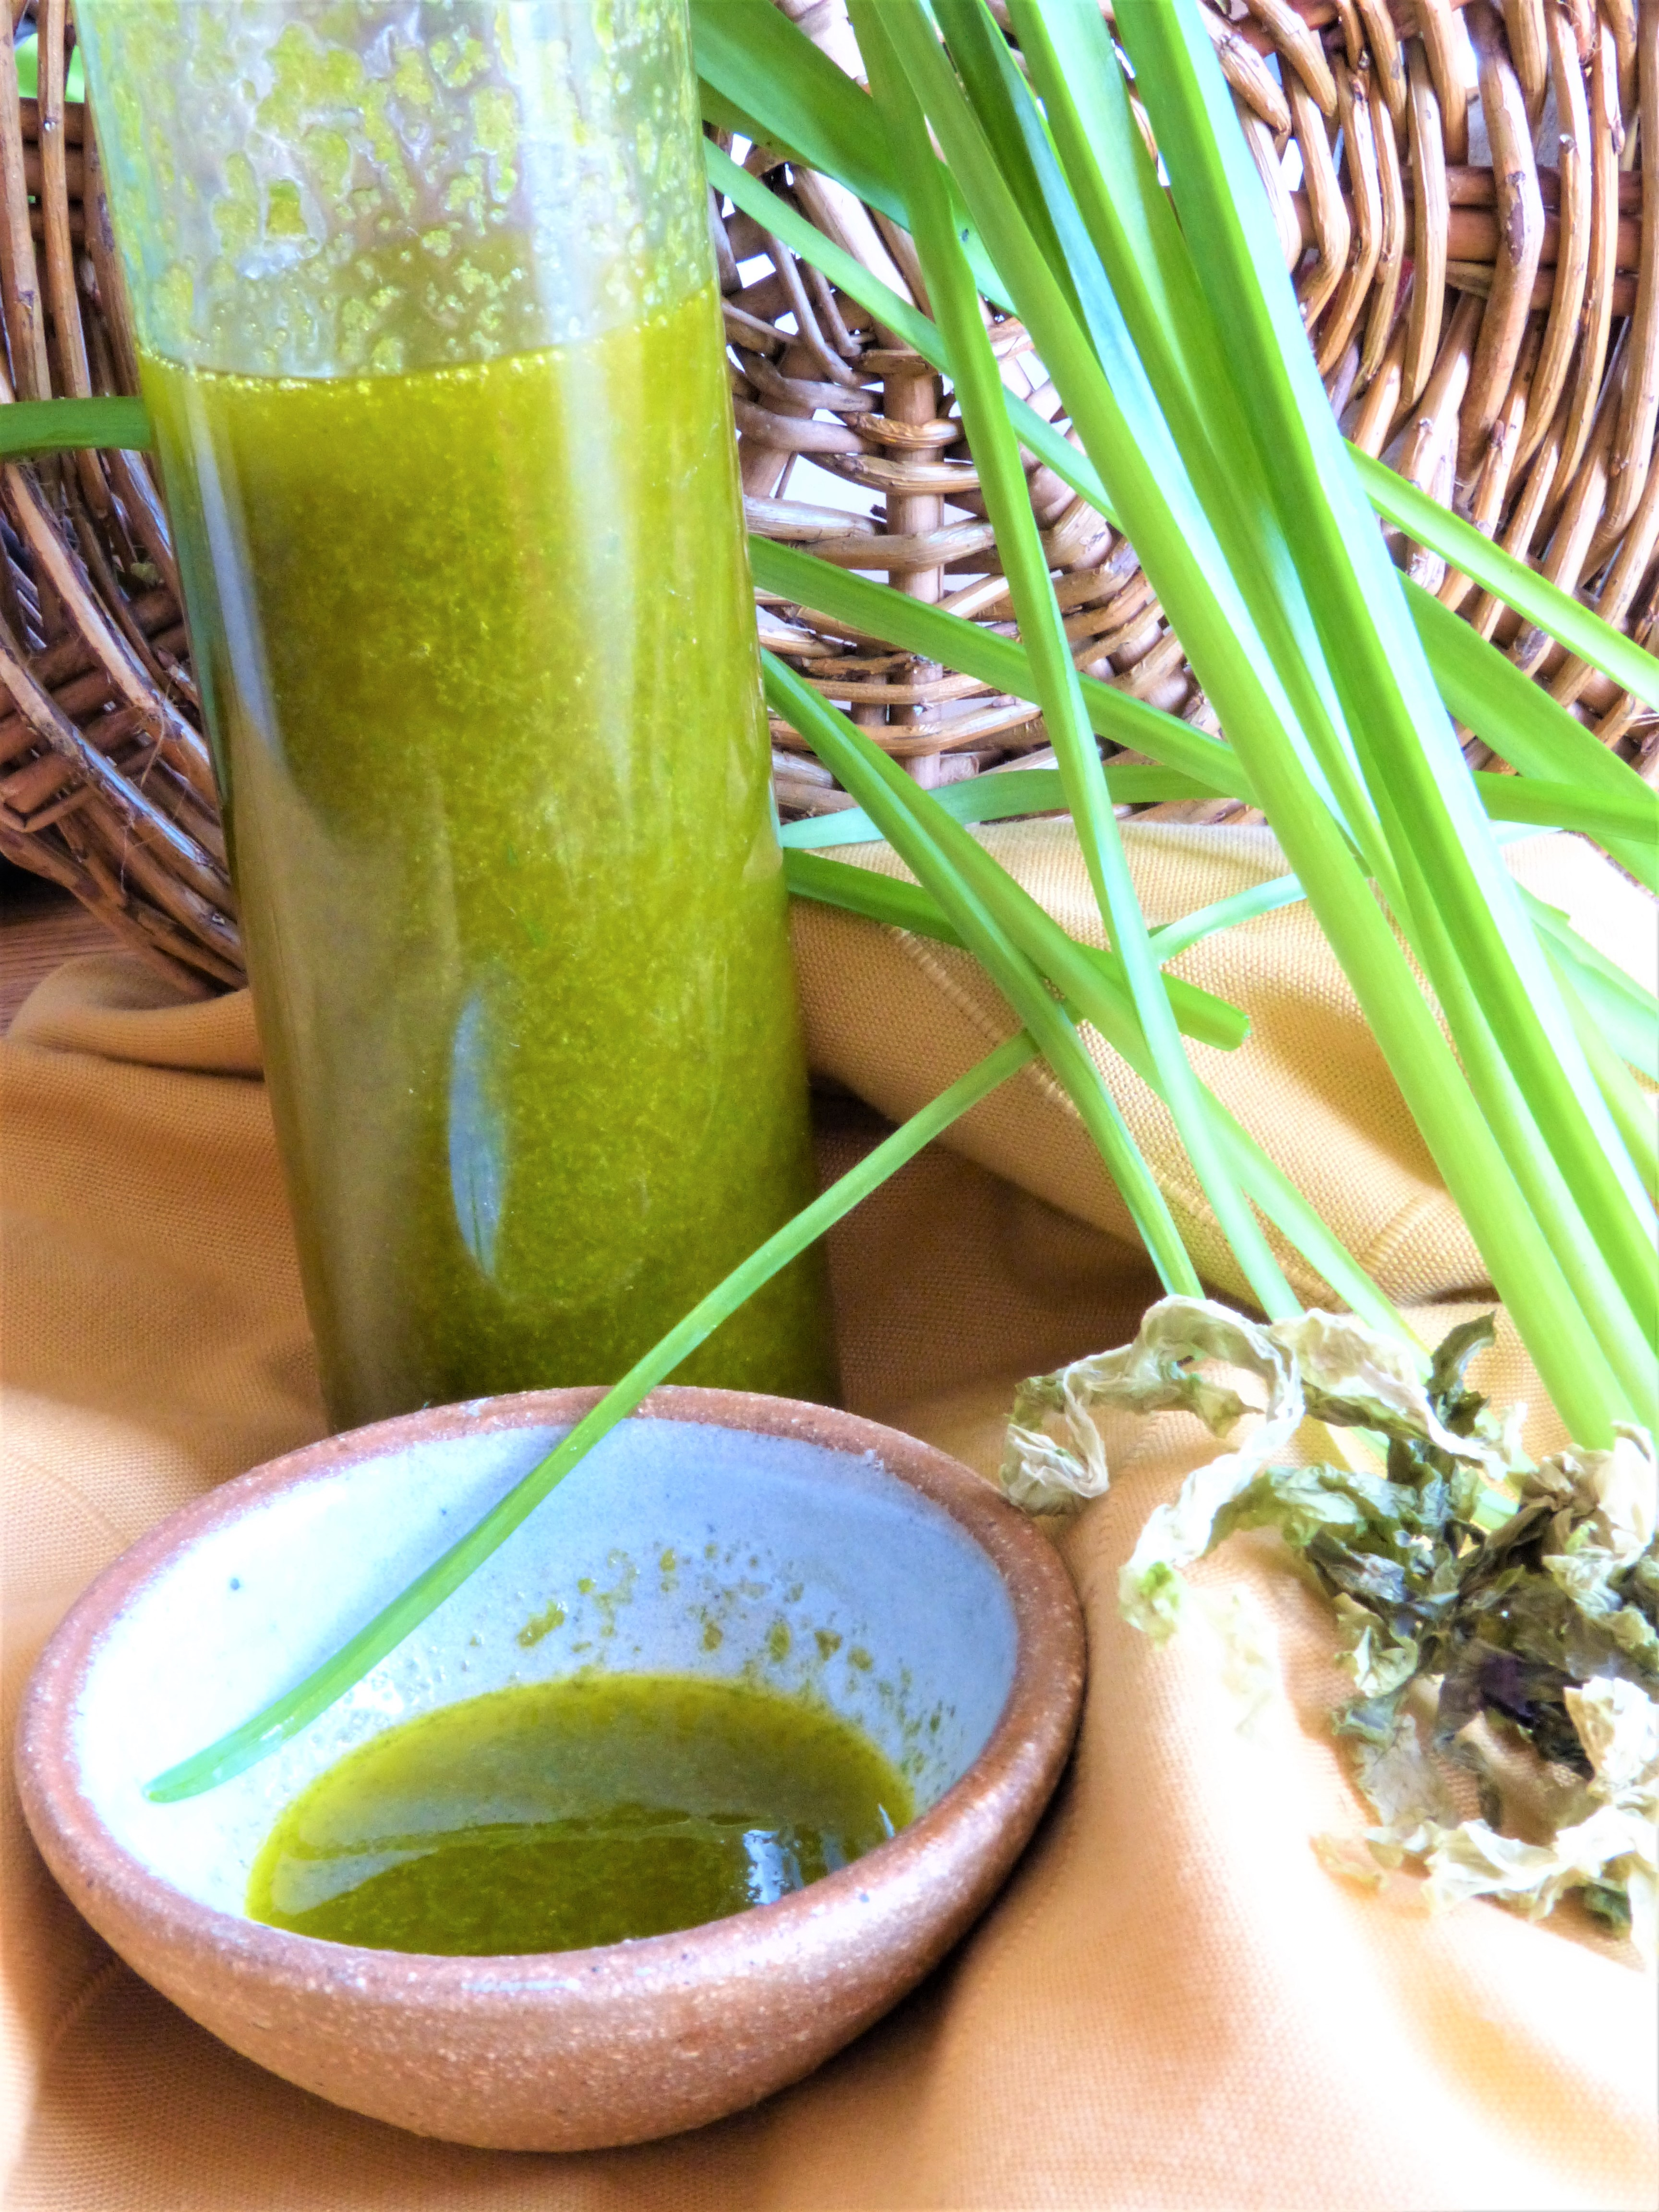 Wild Garlic and Seaweed Oil (inspired by Nathan Outlaw)